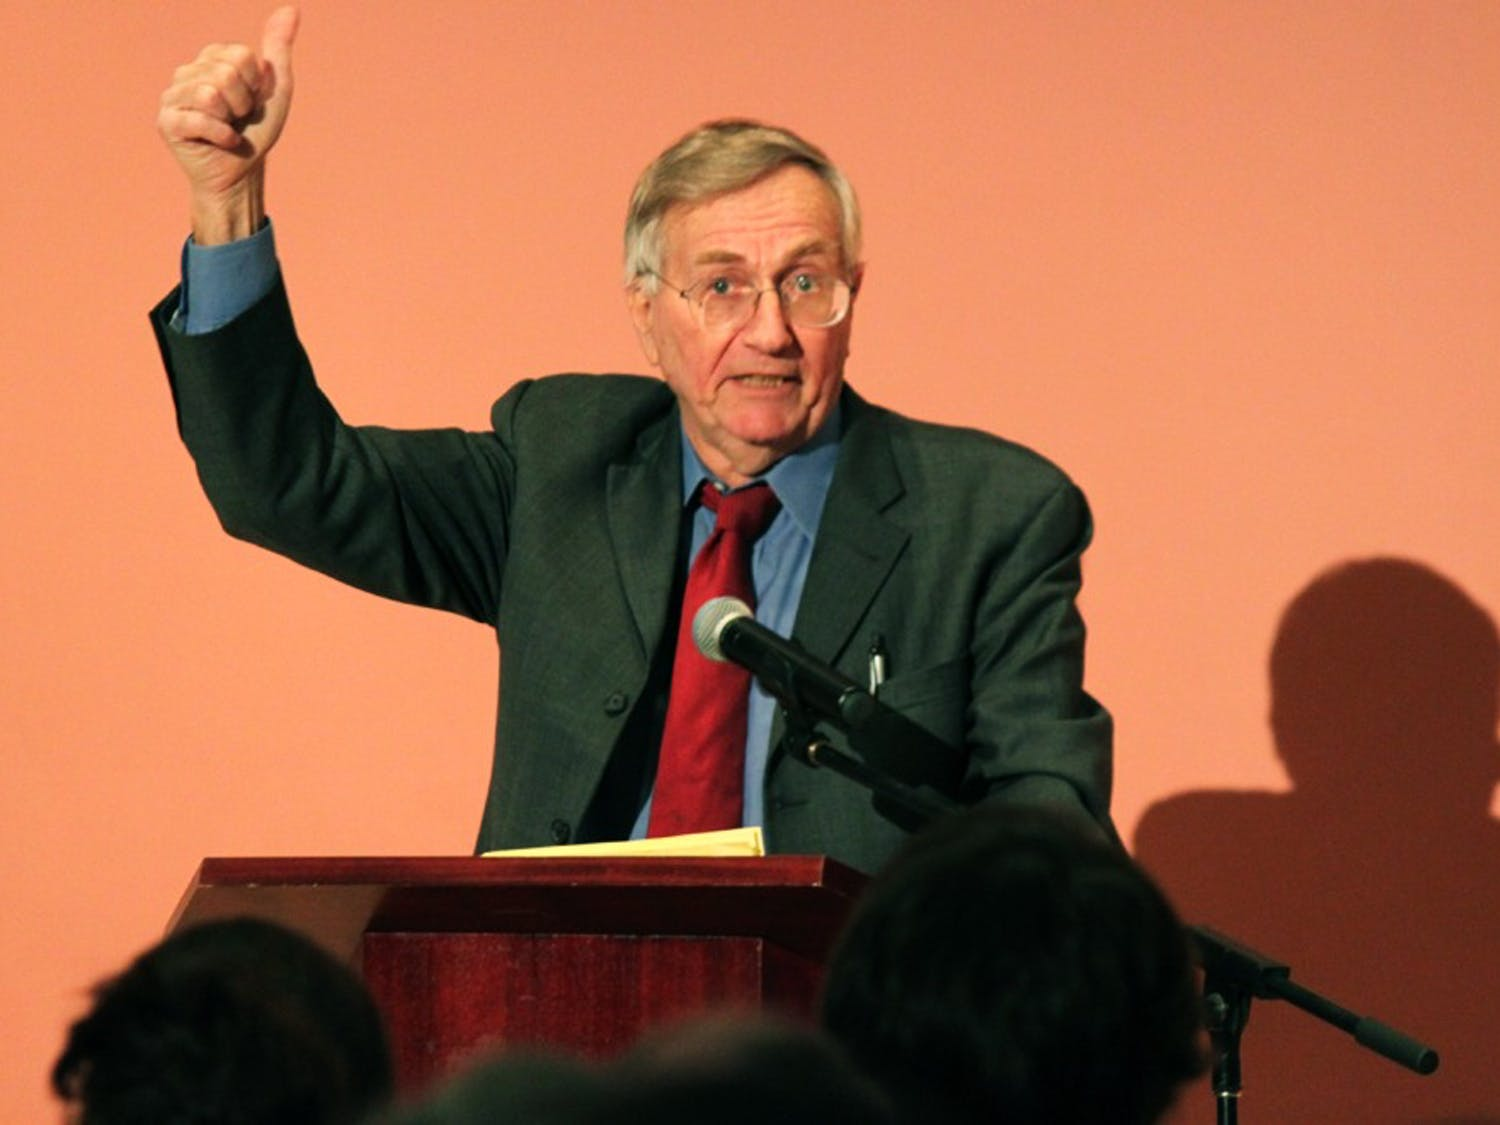 """Seymour Hersh, the Pulitzer Prize-winning investigative journalist, discusses Obama and Bush foreign policy. He has published eight books and exposed the My Lai massacre  in 1969 and the Abu Ghraib prison scandal in 2004.His lecture was titled """"A Report from Washington on the Obama/Bush Foreign Policy"""""""